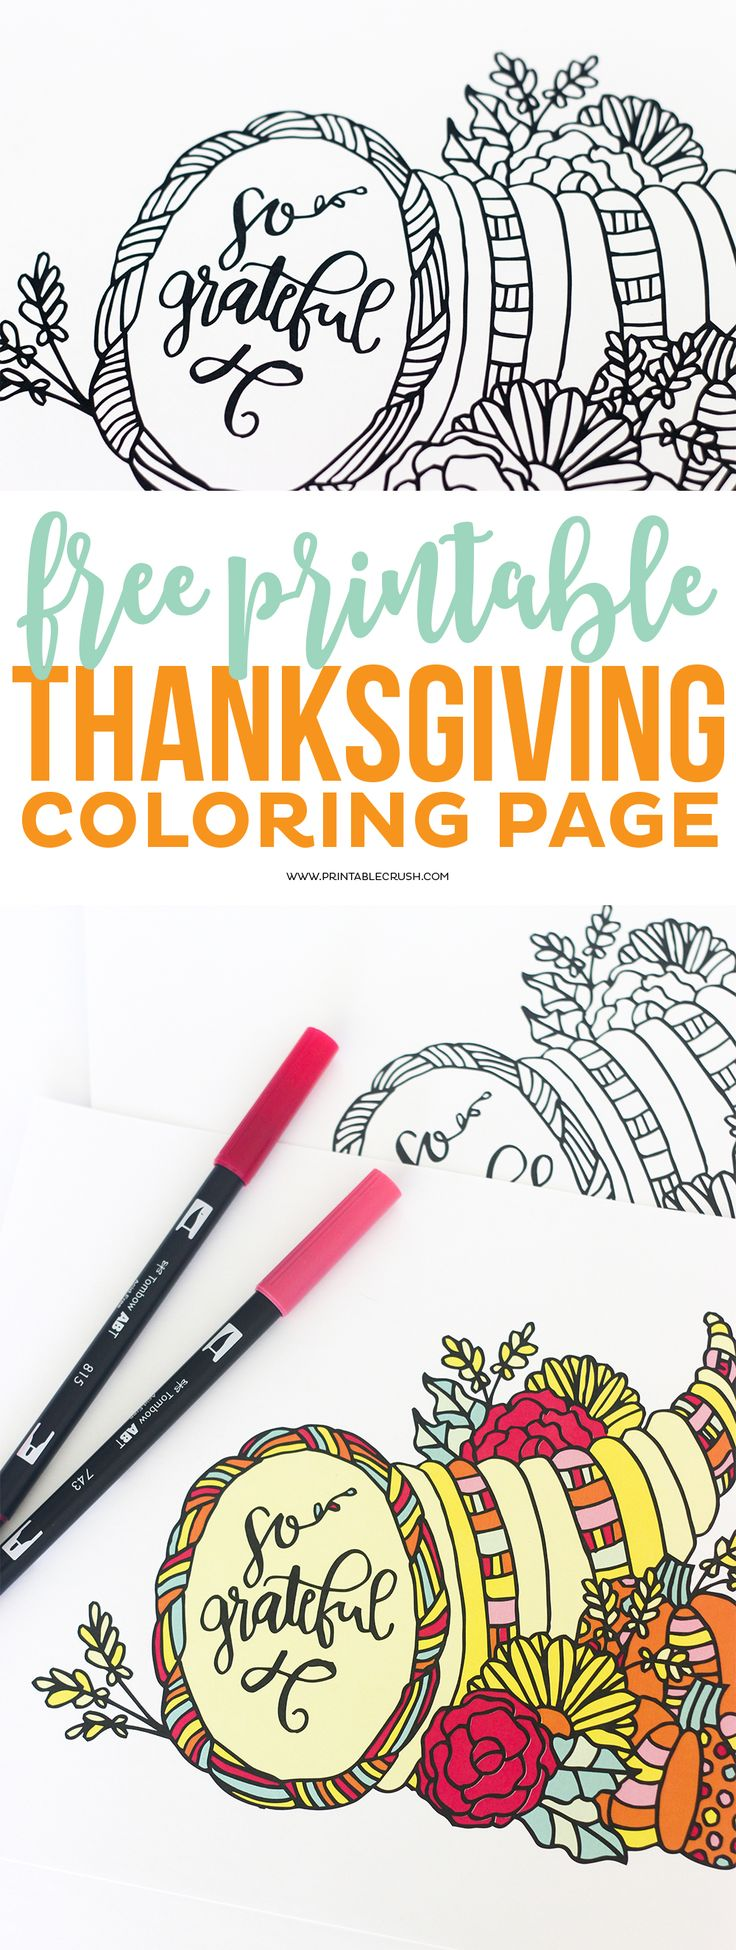 Best 20 Thanksgiving coloring pages ideas on Pinterest